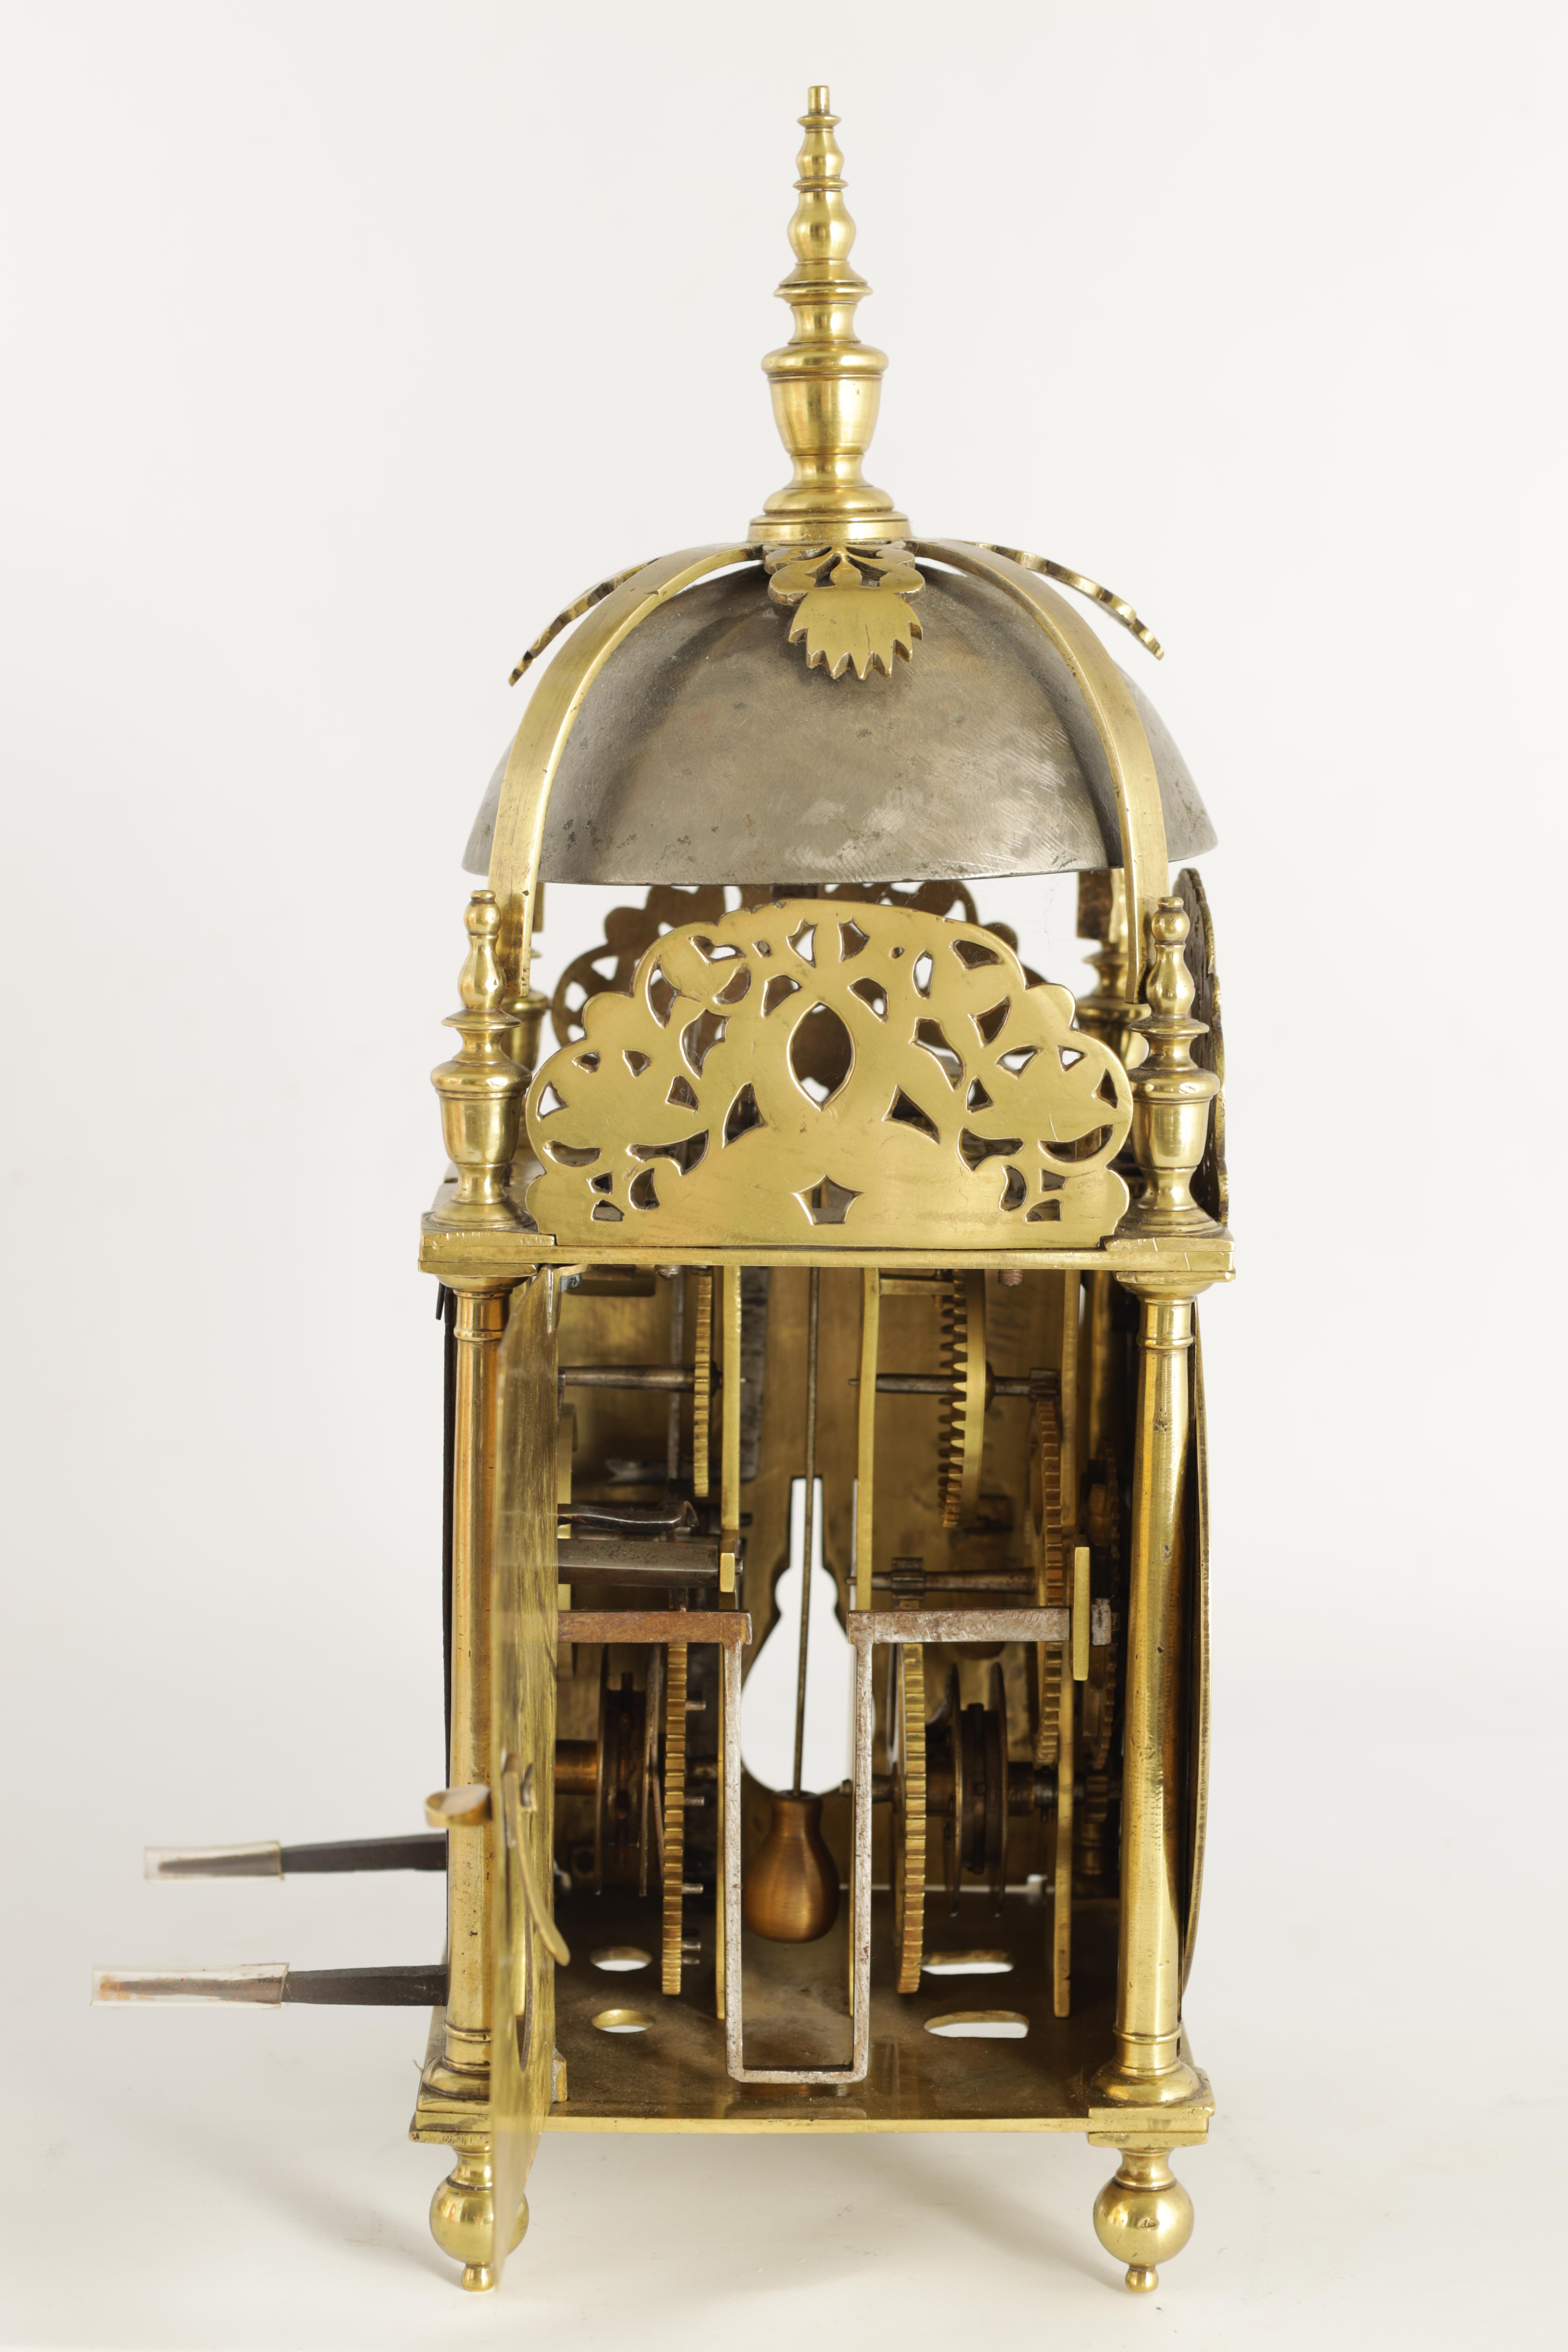 A FINE CHARLES II BRASS LANTERN CLOCKthe posted frame with side doors, engraved fretwork - Image 4 of 9